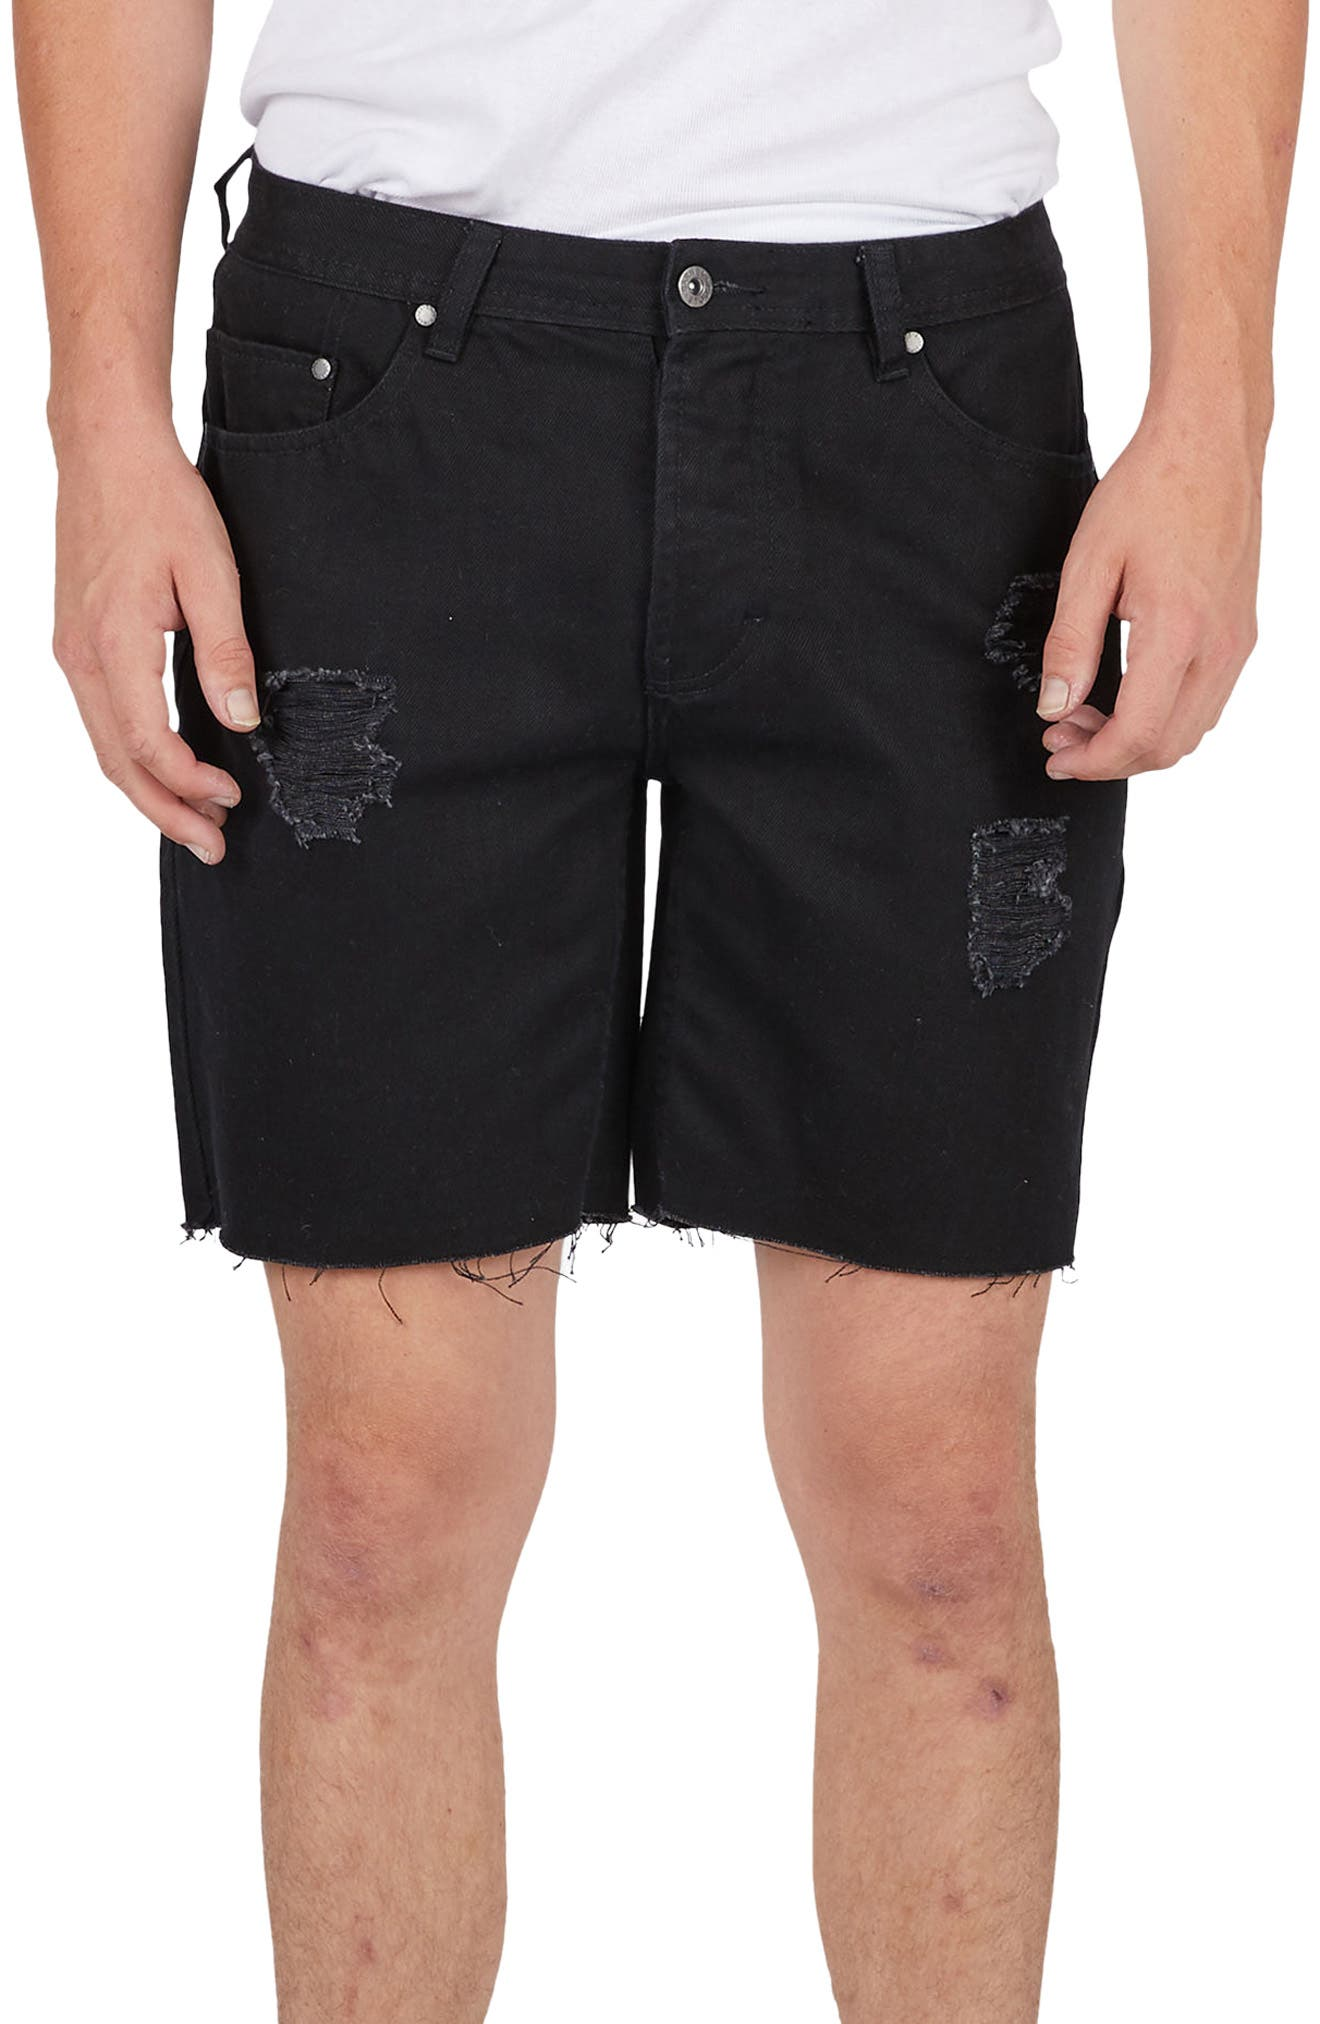 Barney Cools B. Line Denim Shorts (Thrashed Black)